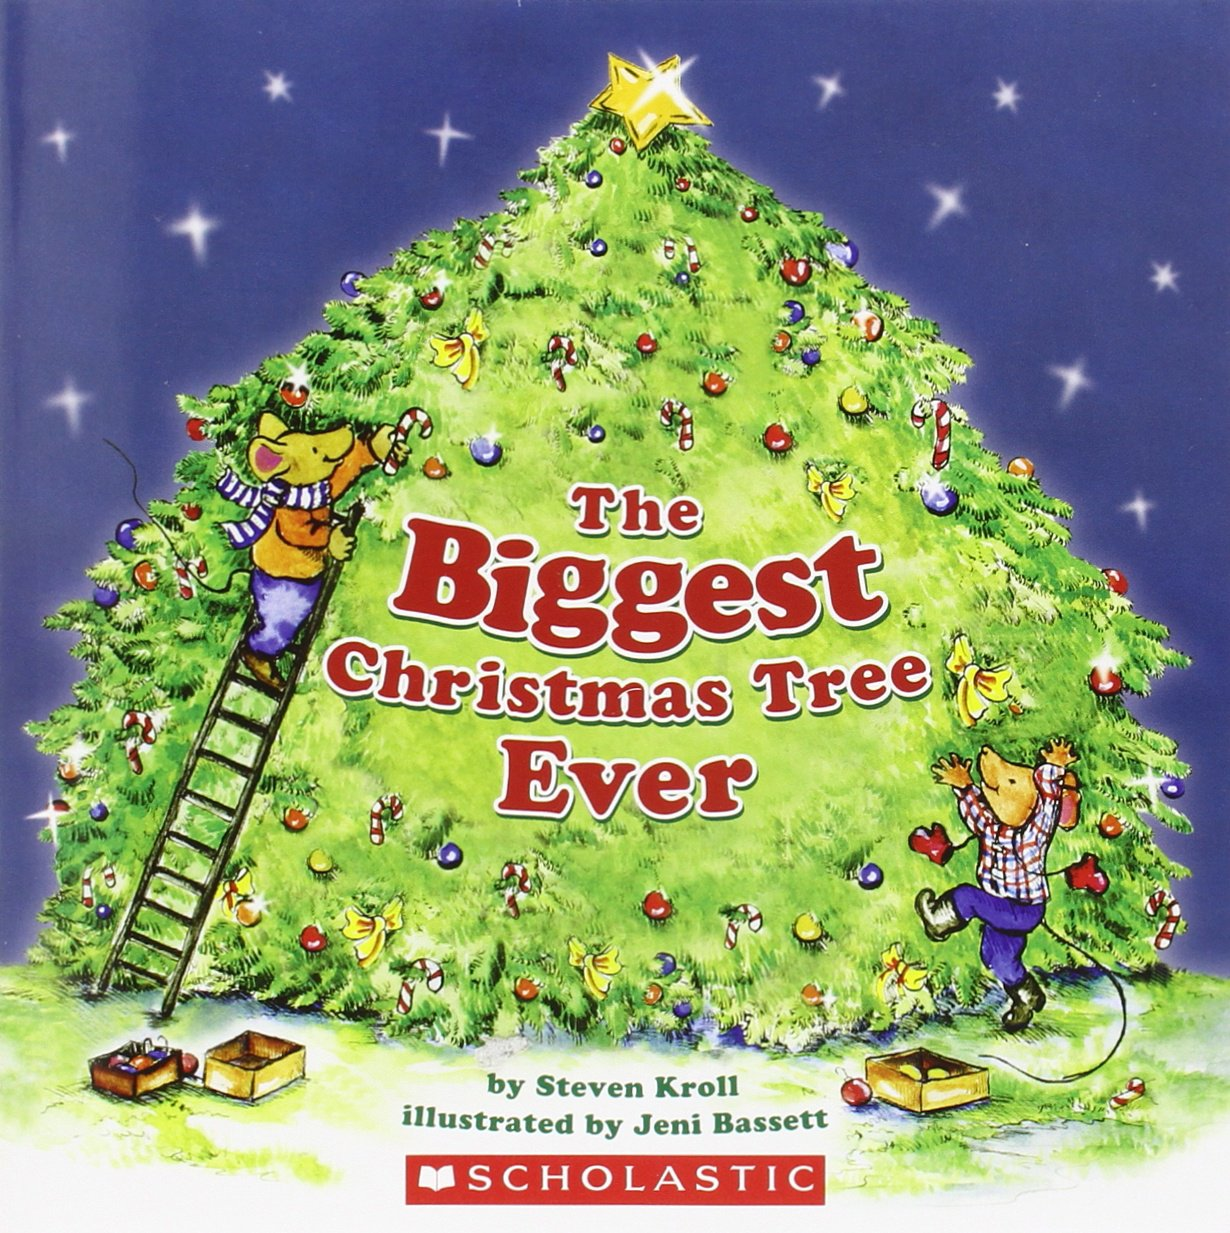 Image result for The Biggest Christmas Tree Ever cover